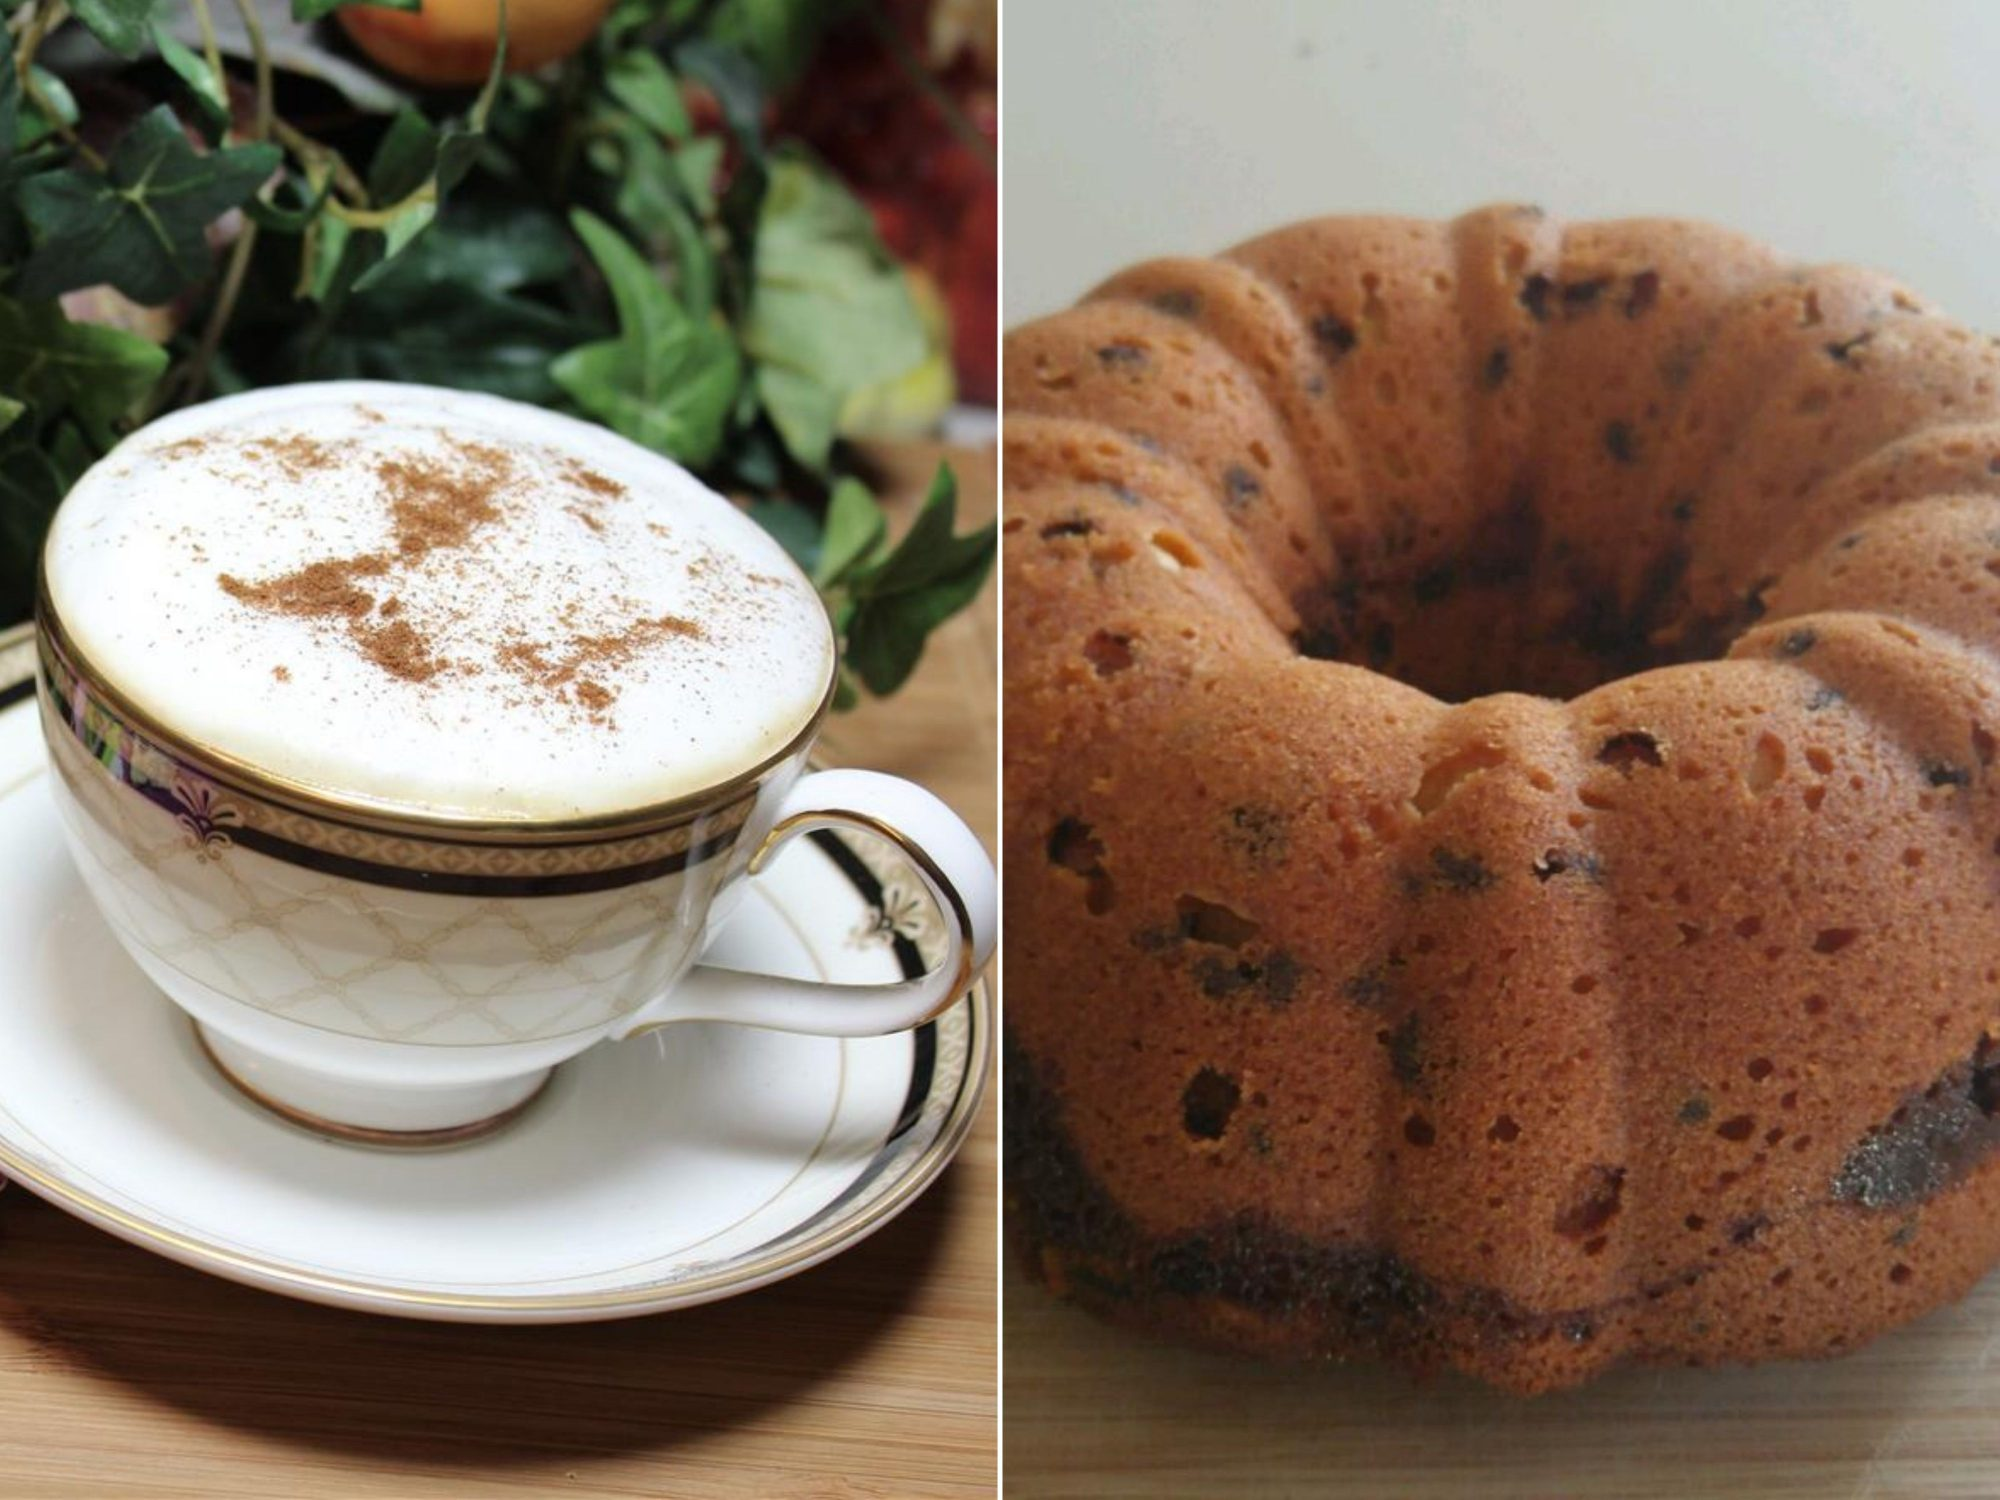 an image pairing a latte and a coffee cake